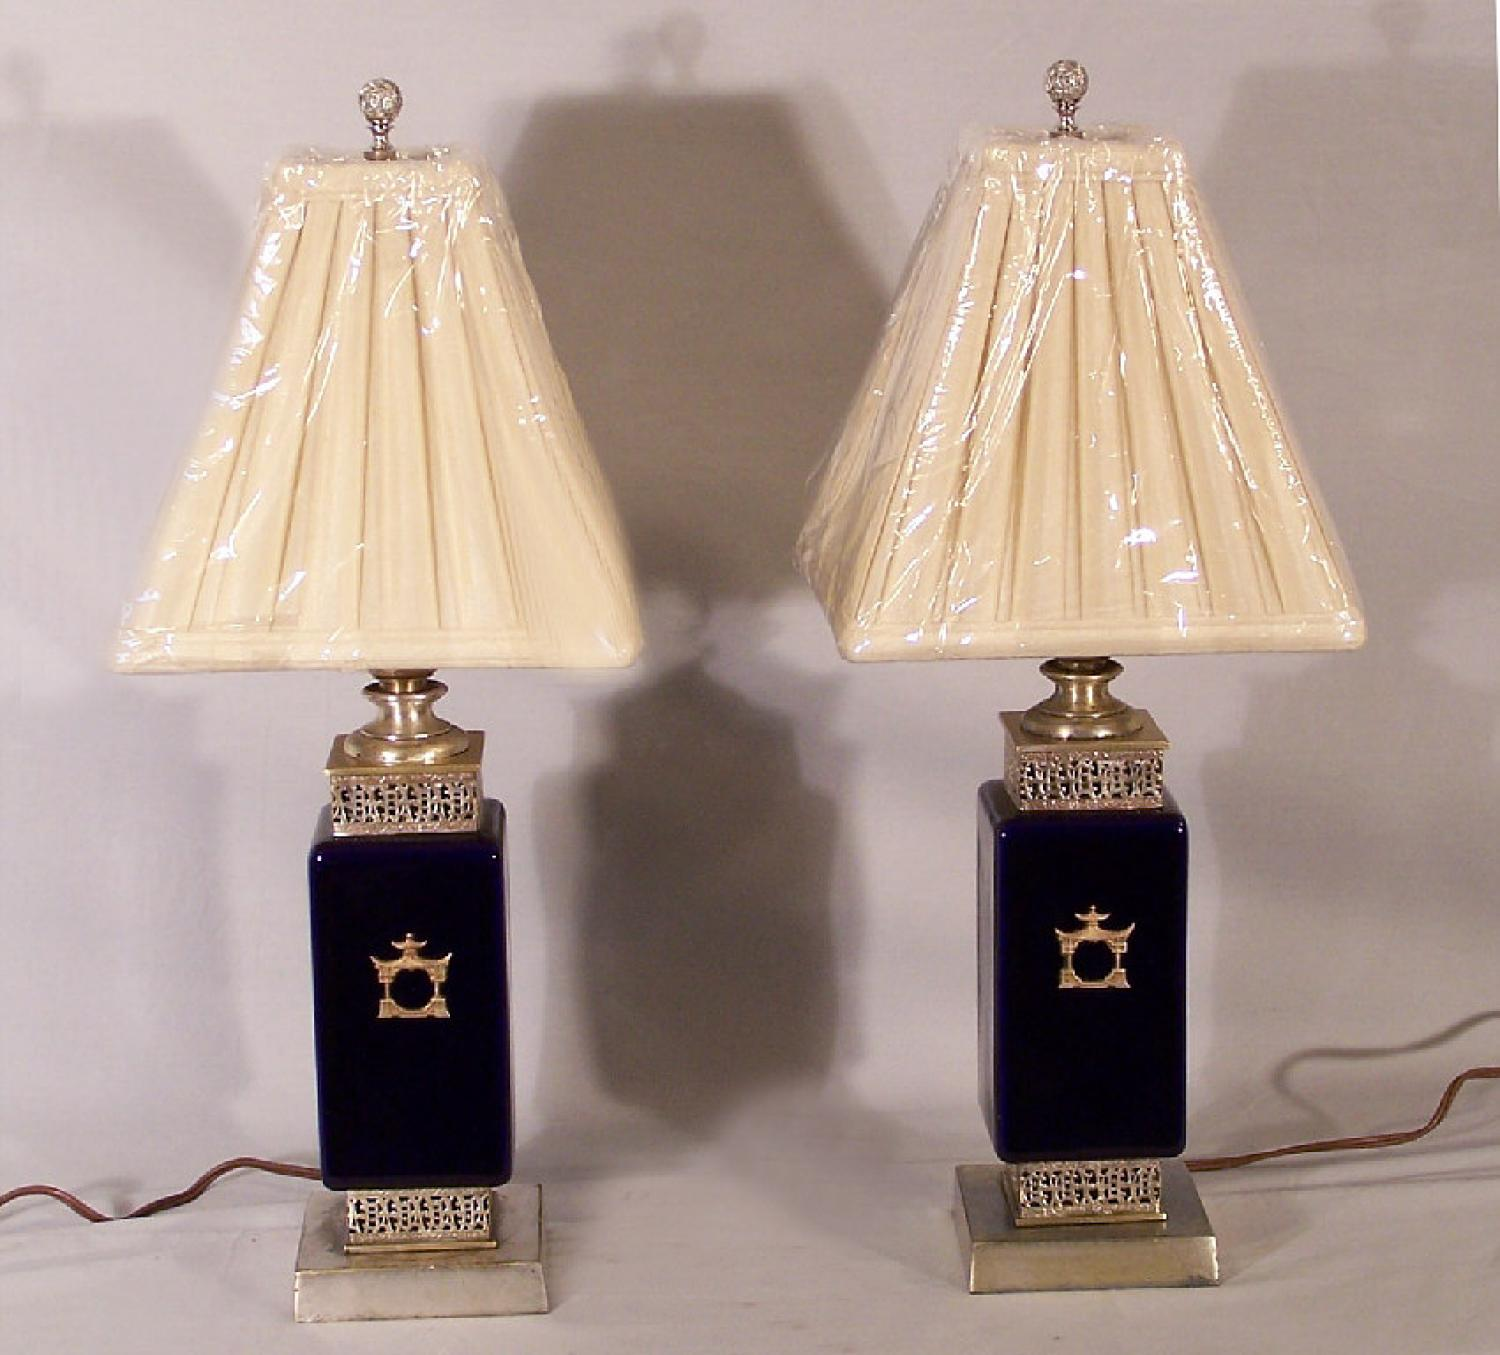 Vintage cobalt blue porcelain Chinese style lamps